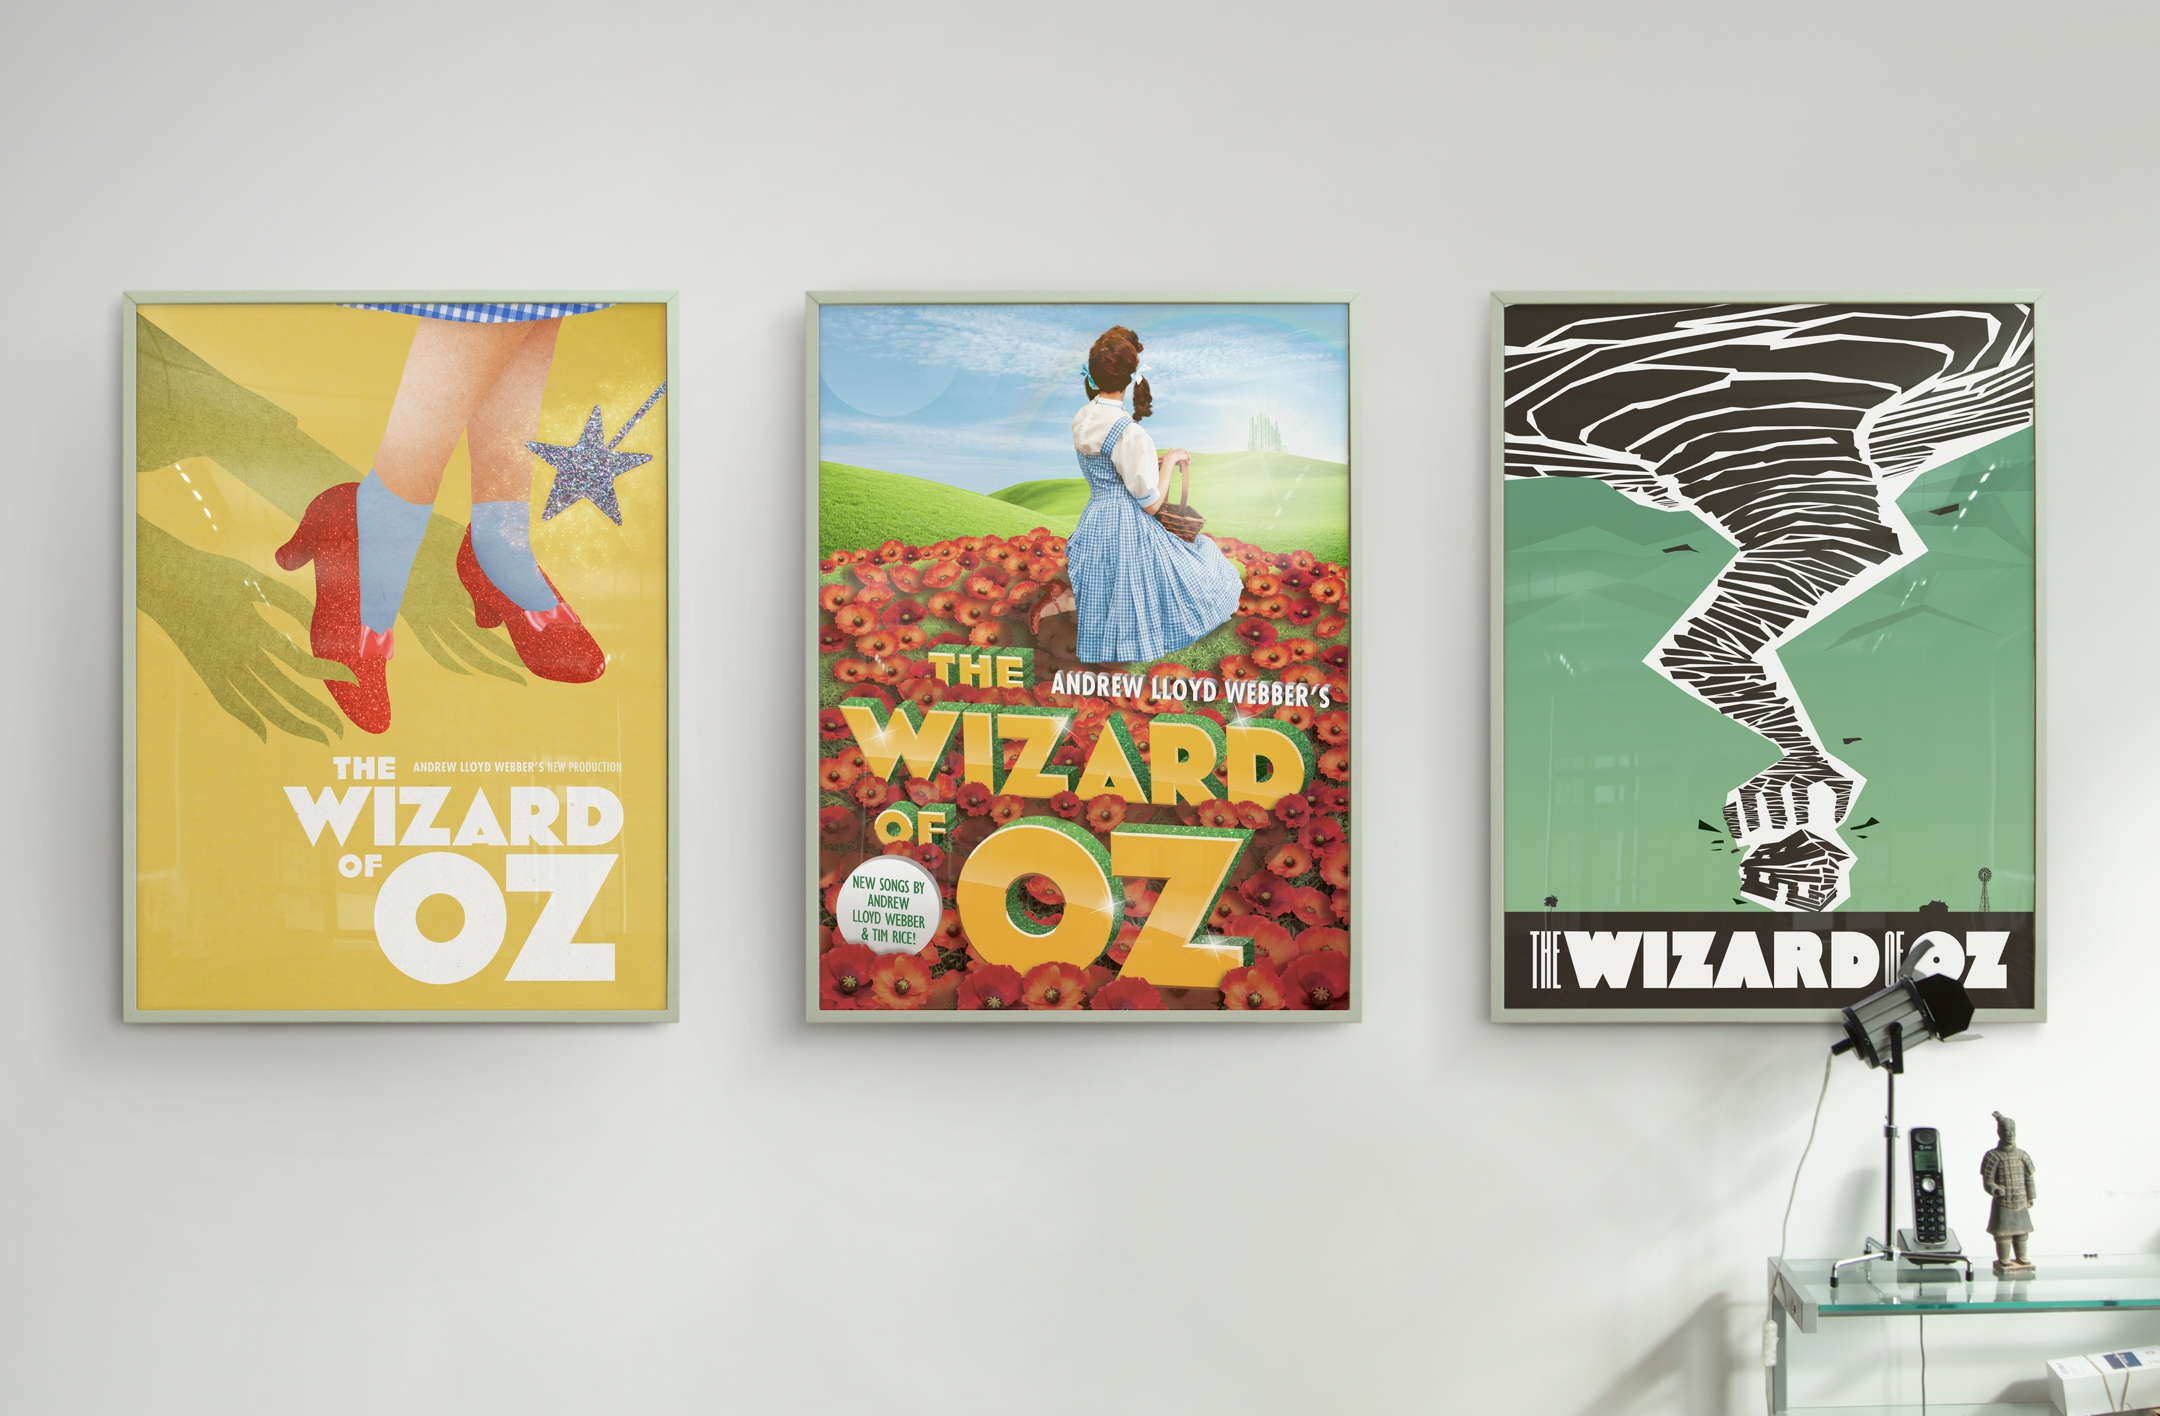 The Wizard of Oz Poster Concepts